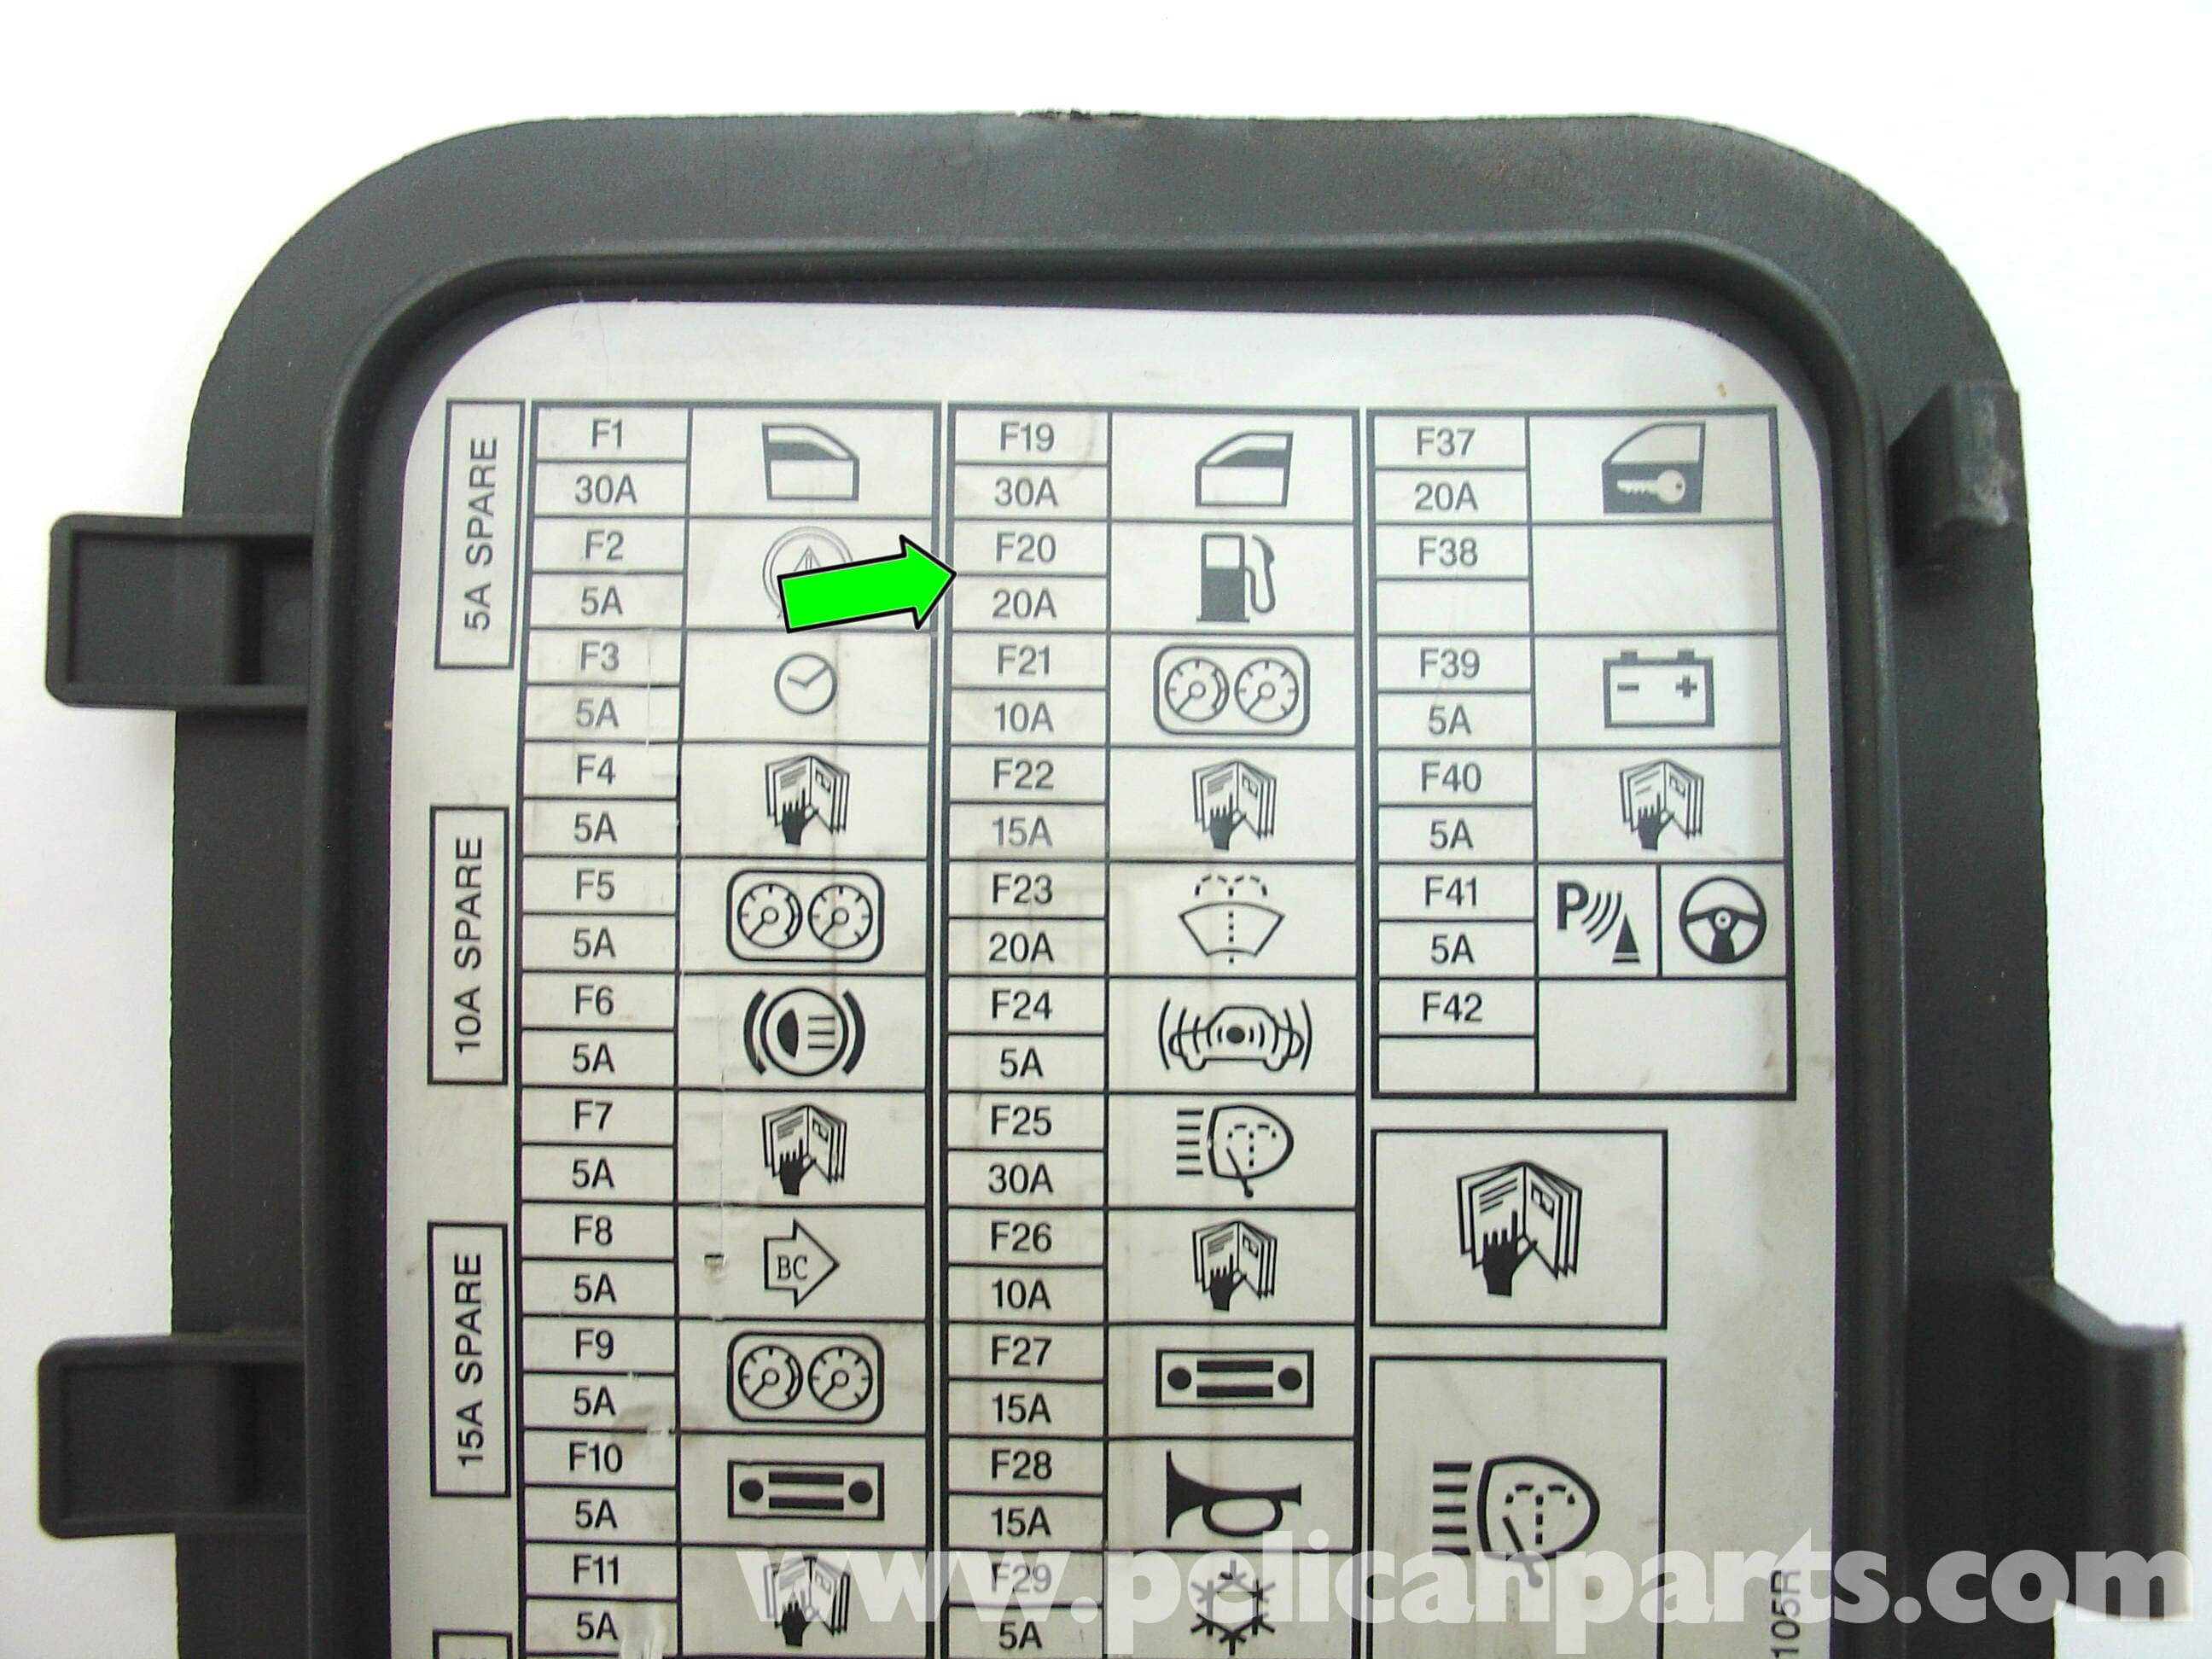 2007 Mini Fuse Diagram Wiring Diagrams Box 2000 Durango Cooper Simple Lincoln Mkz